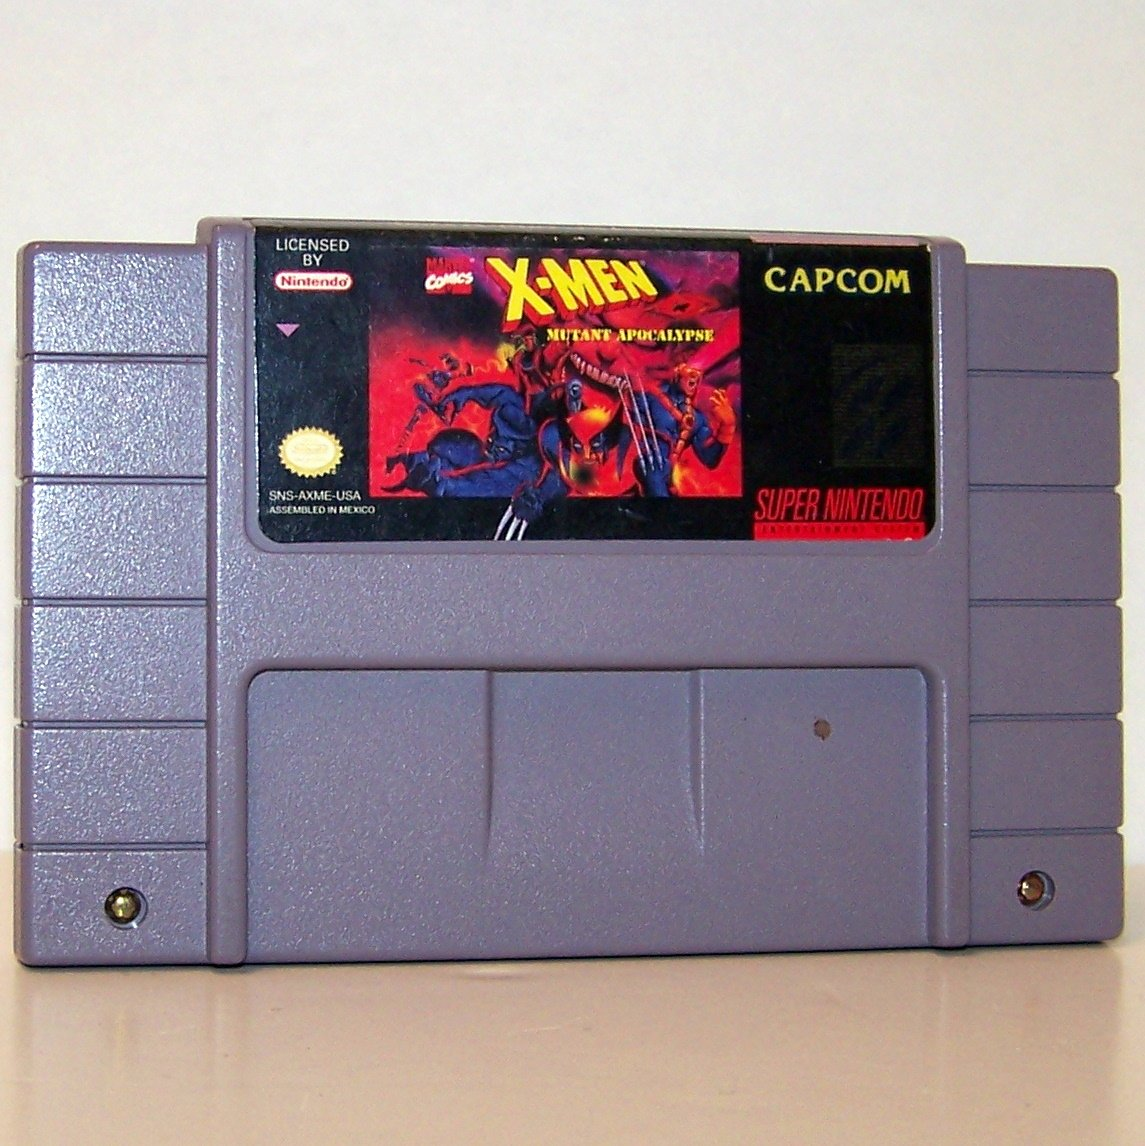 X-Men Mutant Apocalypse Super Nintendo Game Cartridge